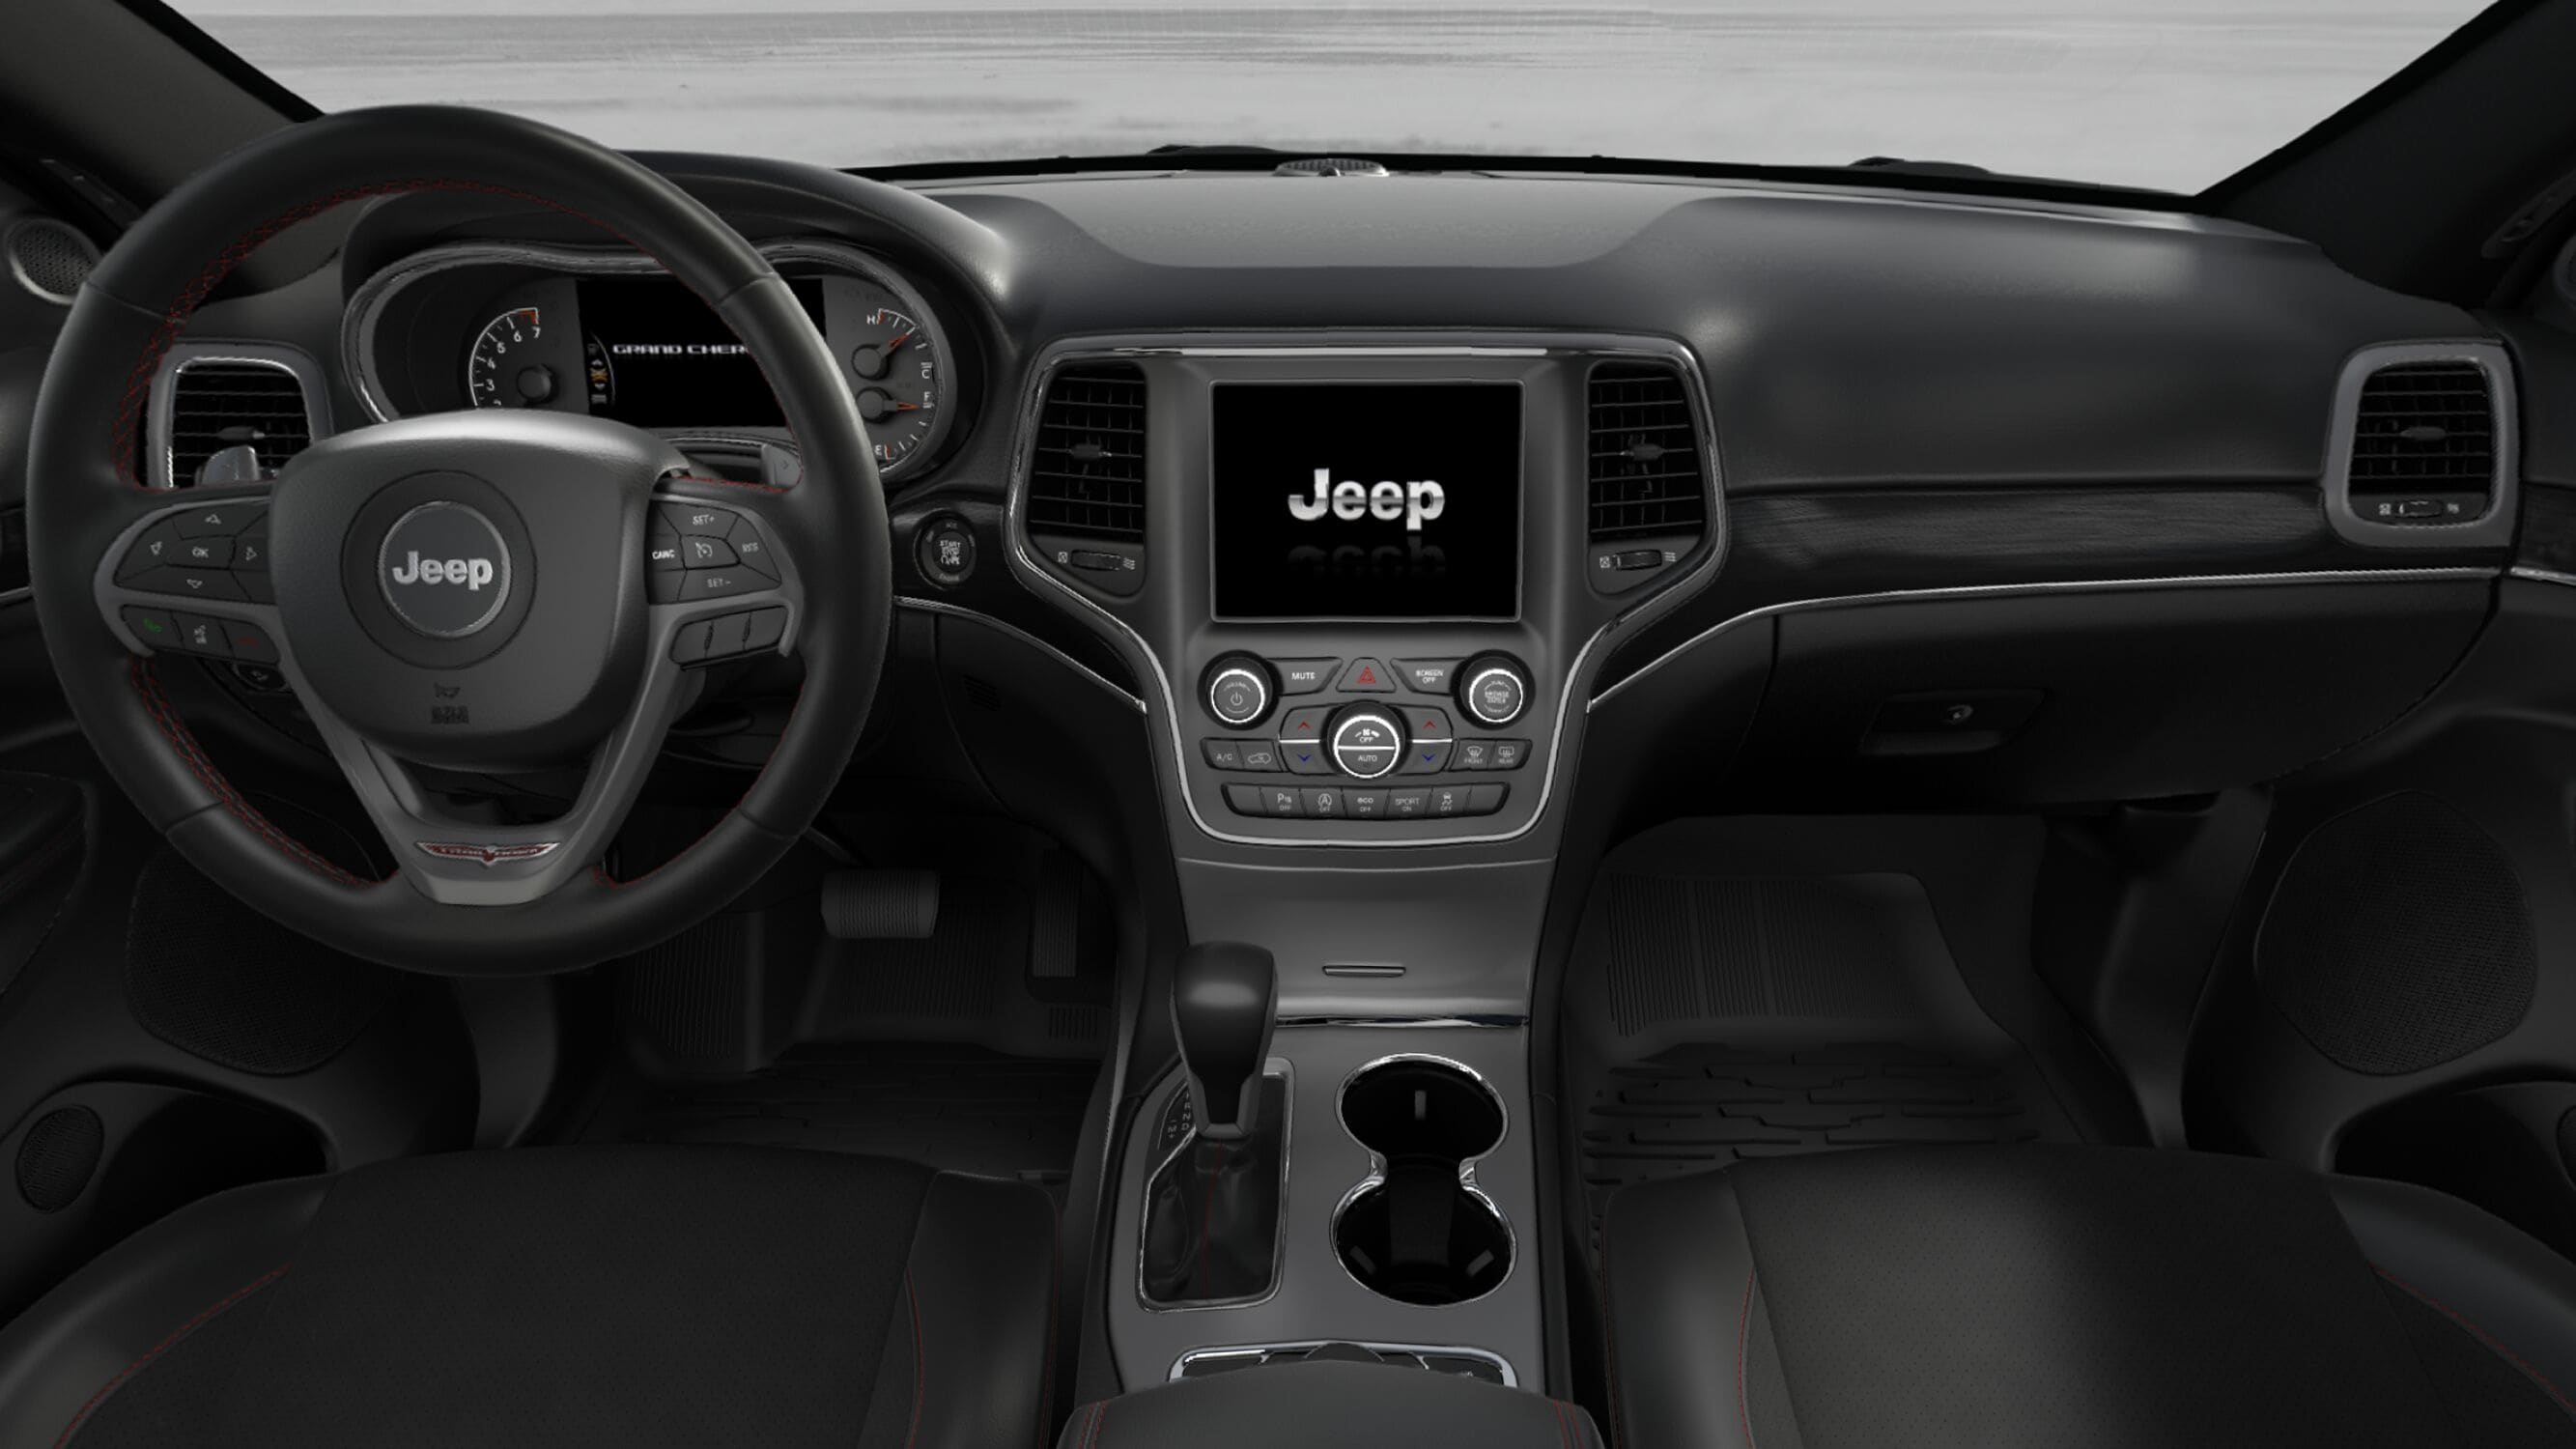 cherokee suv price seats photos reviews jeep grand laredo interior front features